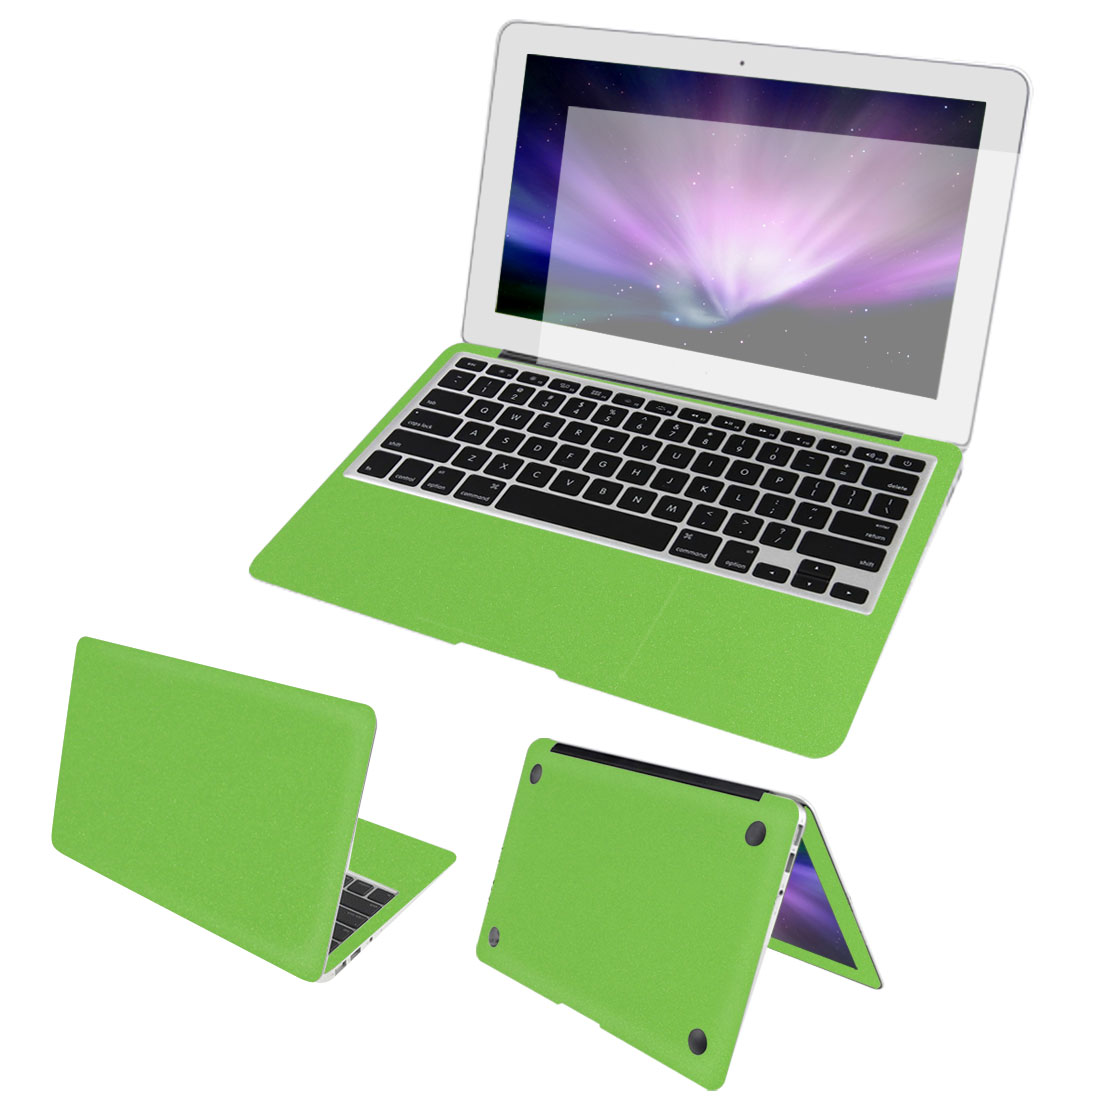 Green Body Wrap Protector Decal Skin Screen Guard Dust Plug for Macbook Air 15""